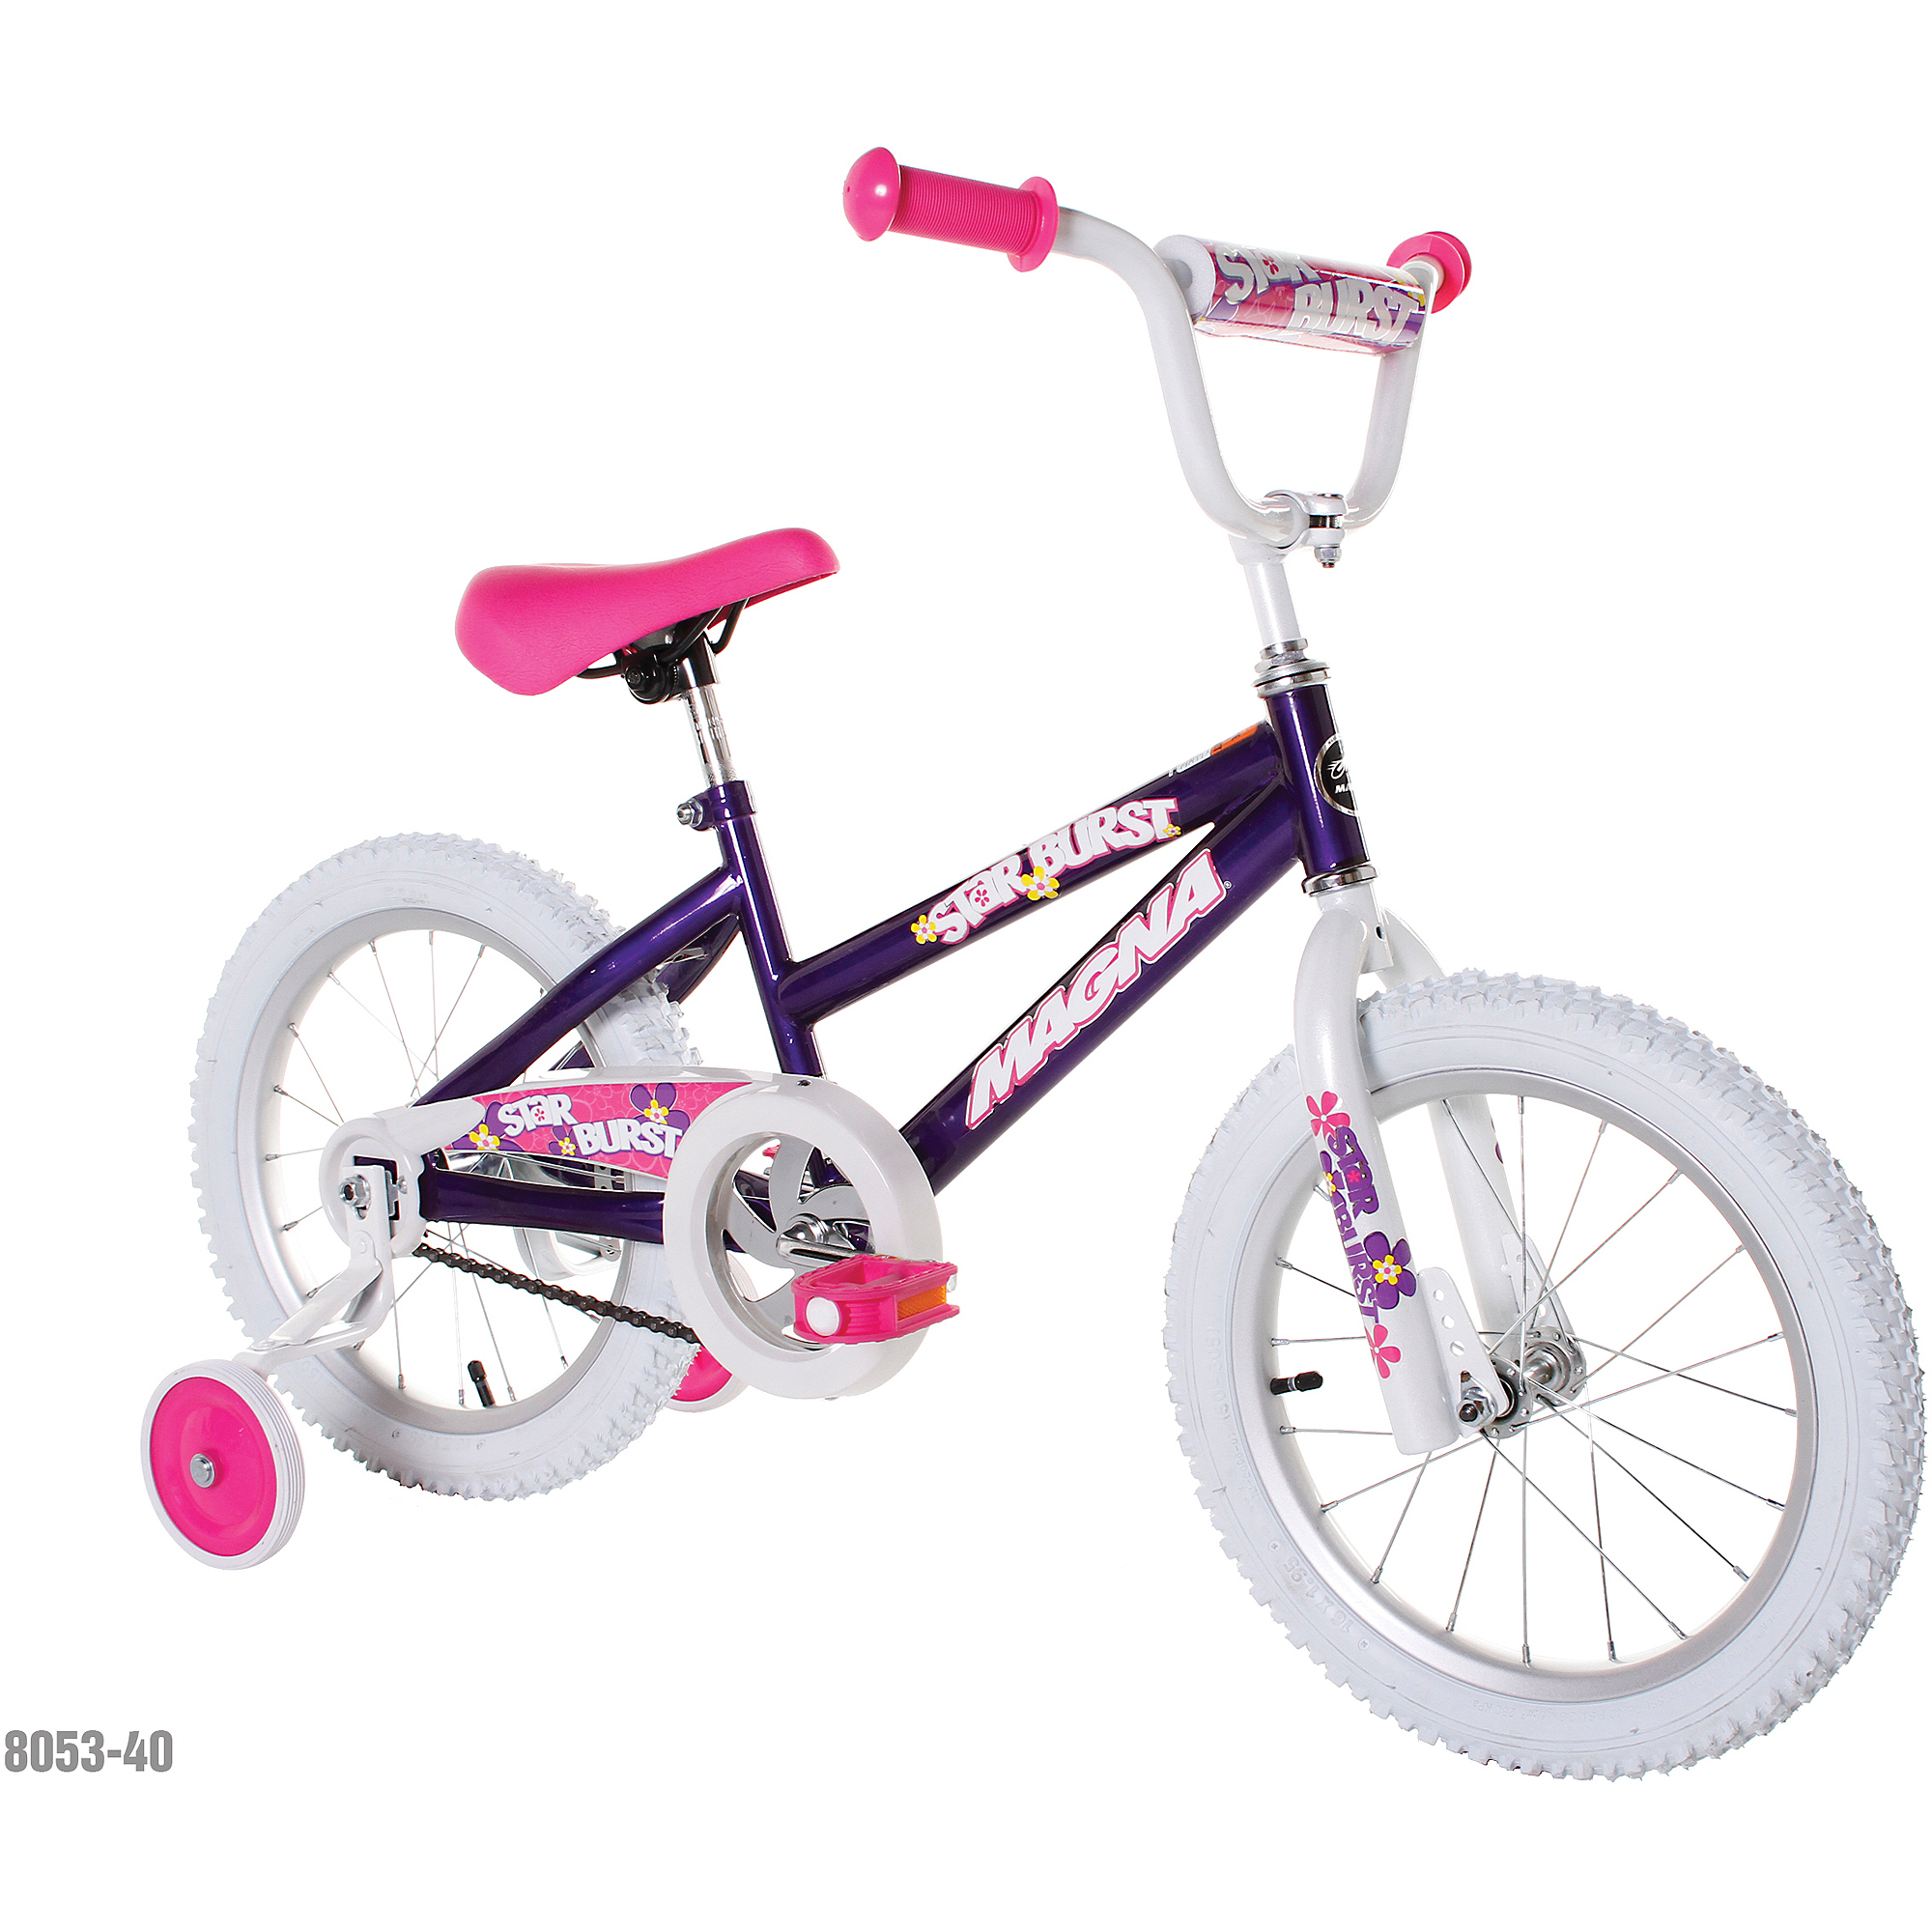 "Starburst 16"" Bicycle"